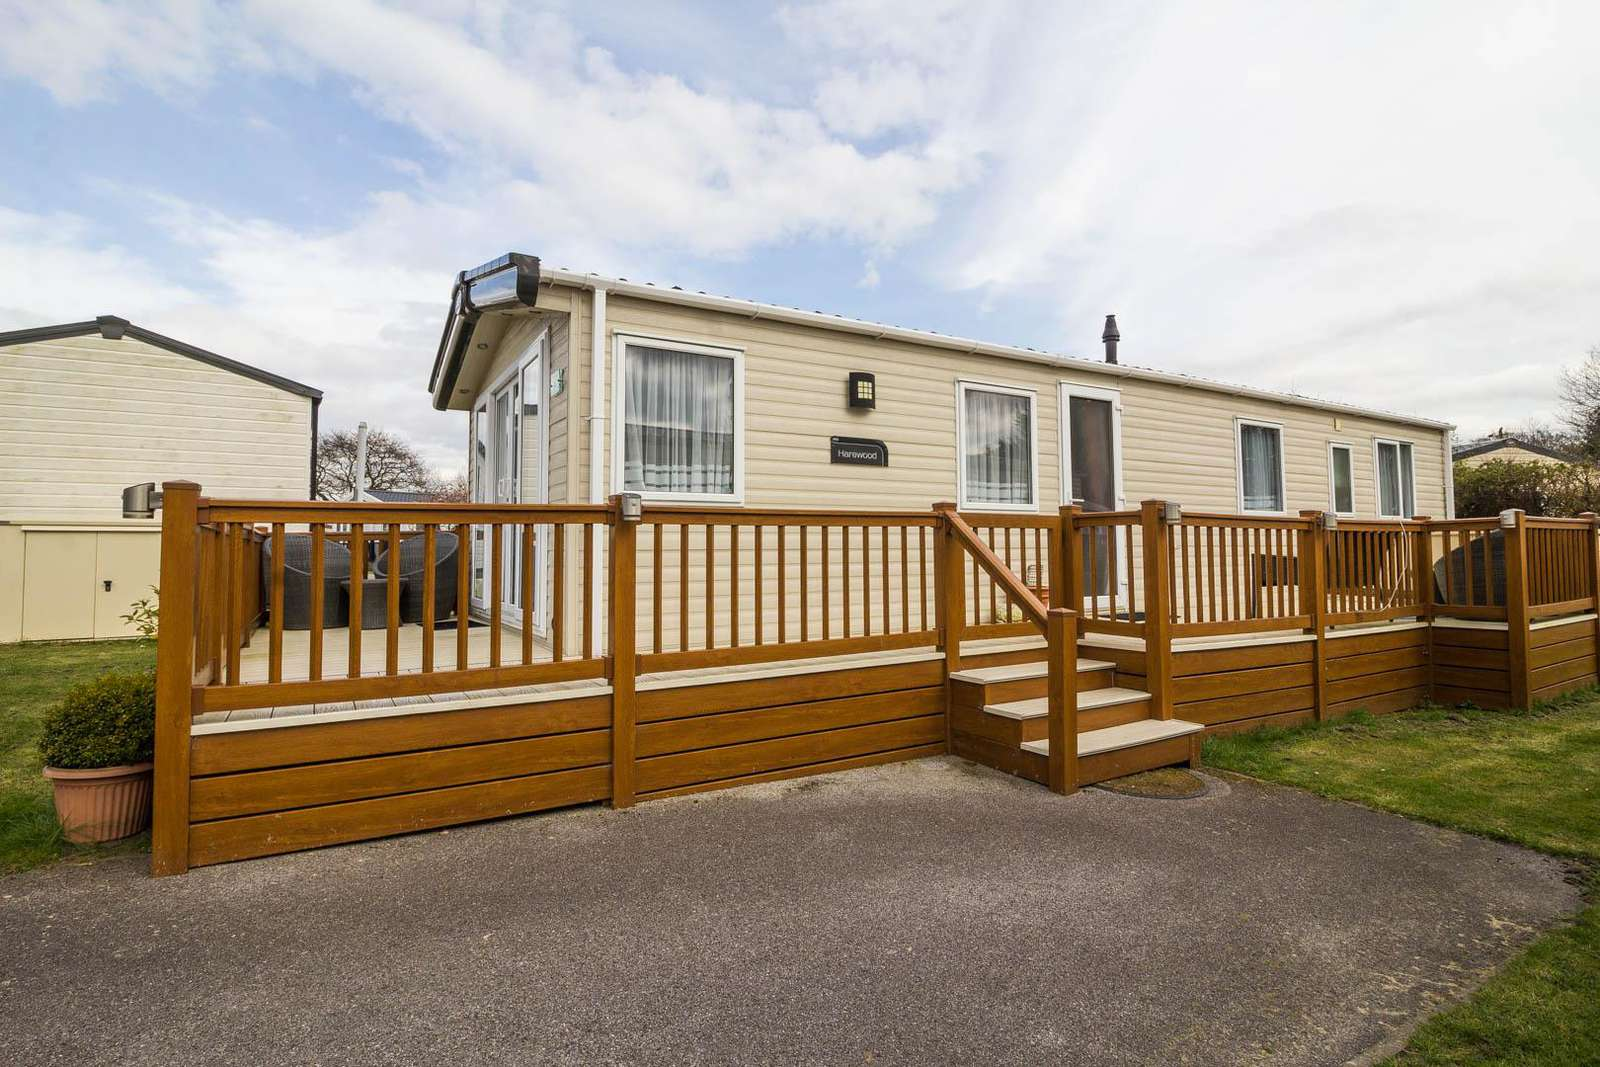 70008TG – The Grove area, 3 bed, 8 berth caravan with decking. Diamond rated. - property